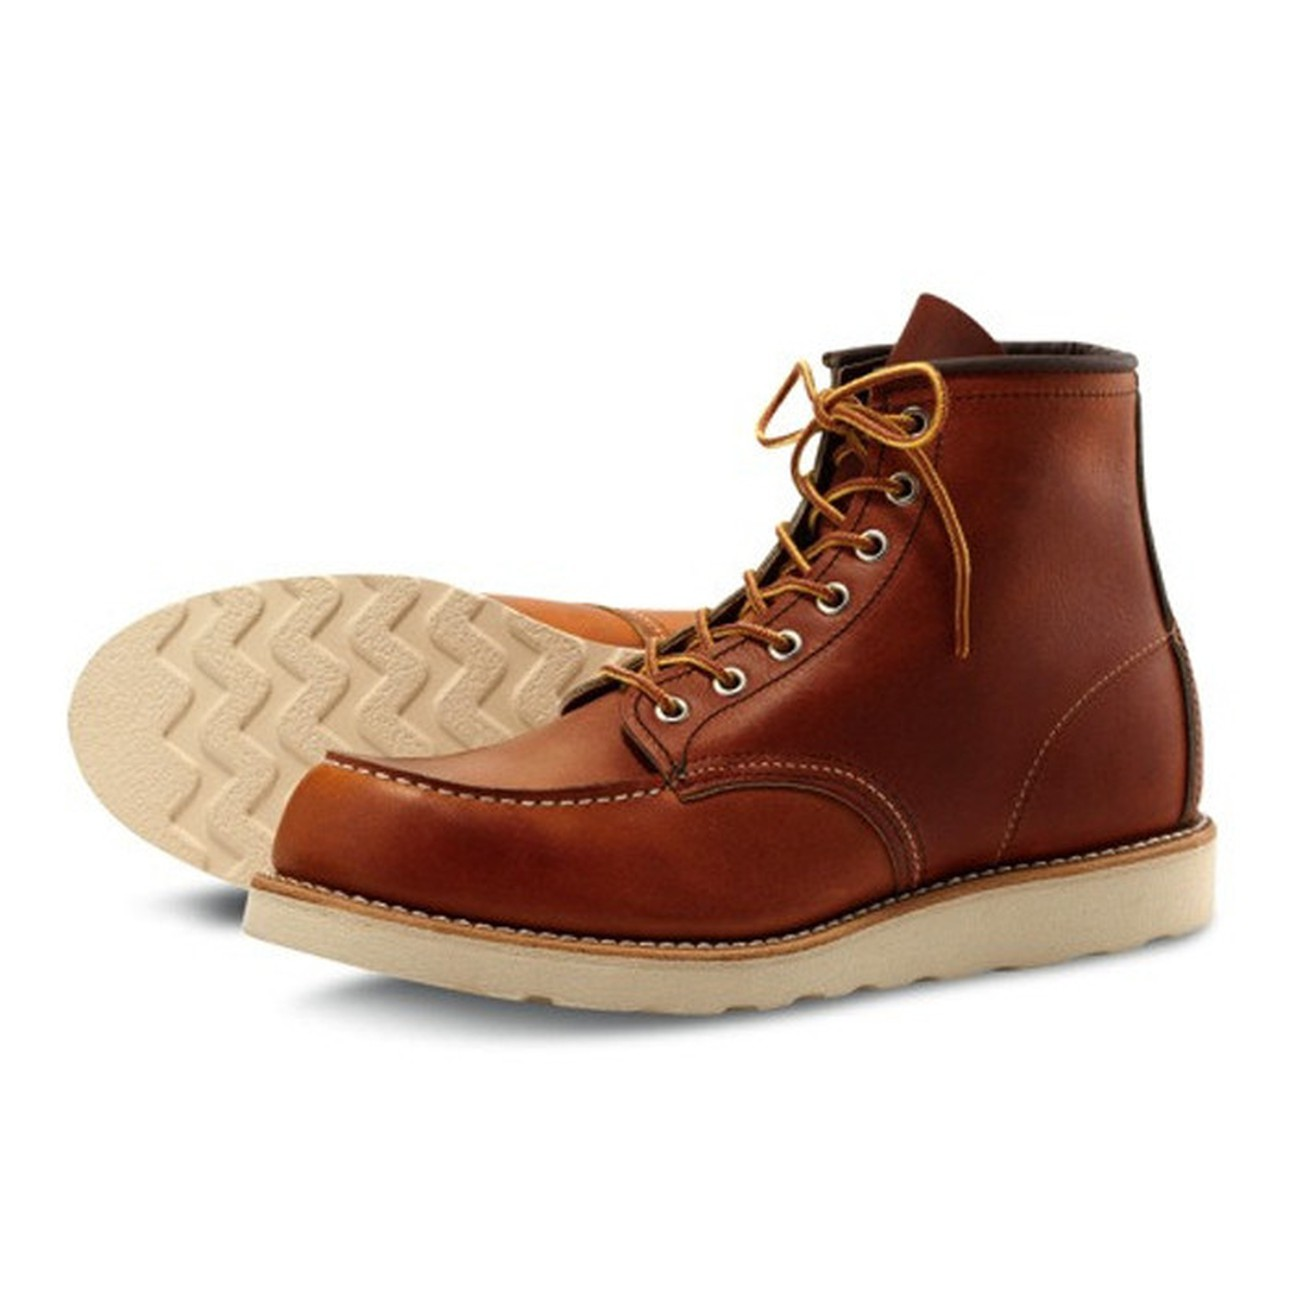 427912bbc1f RED WING 875 CLASSIC MOC TOE BOOTS